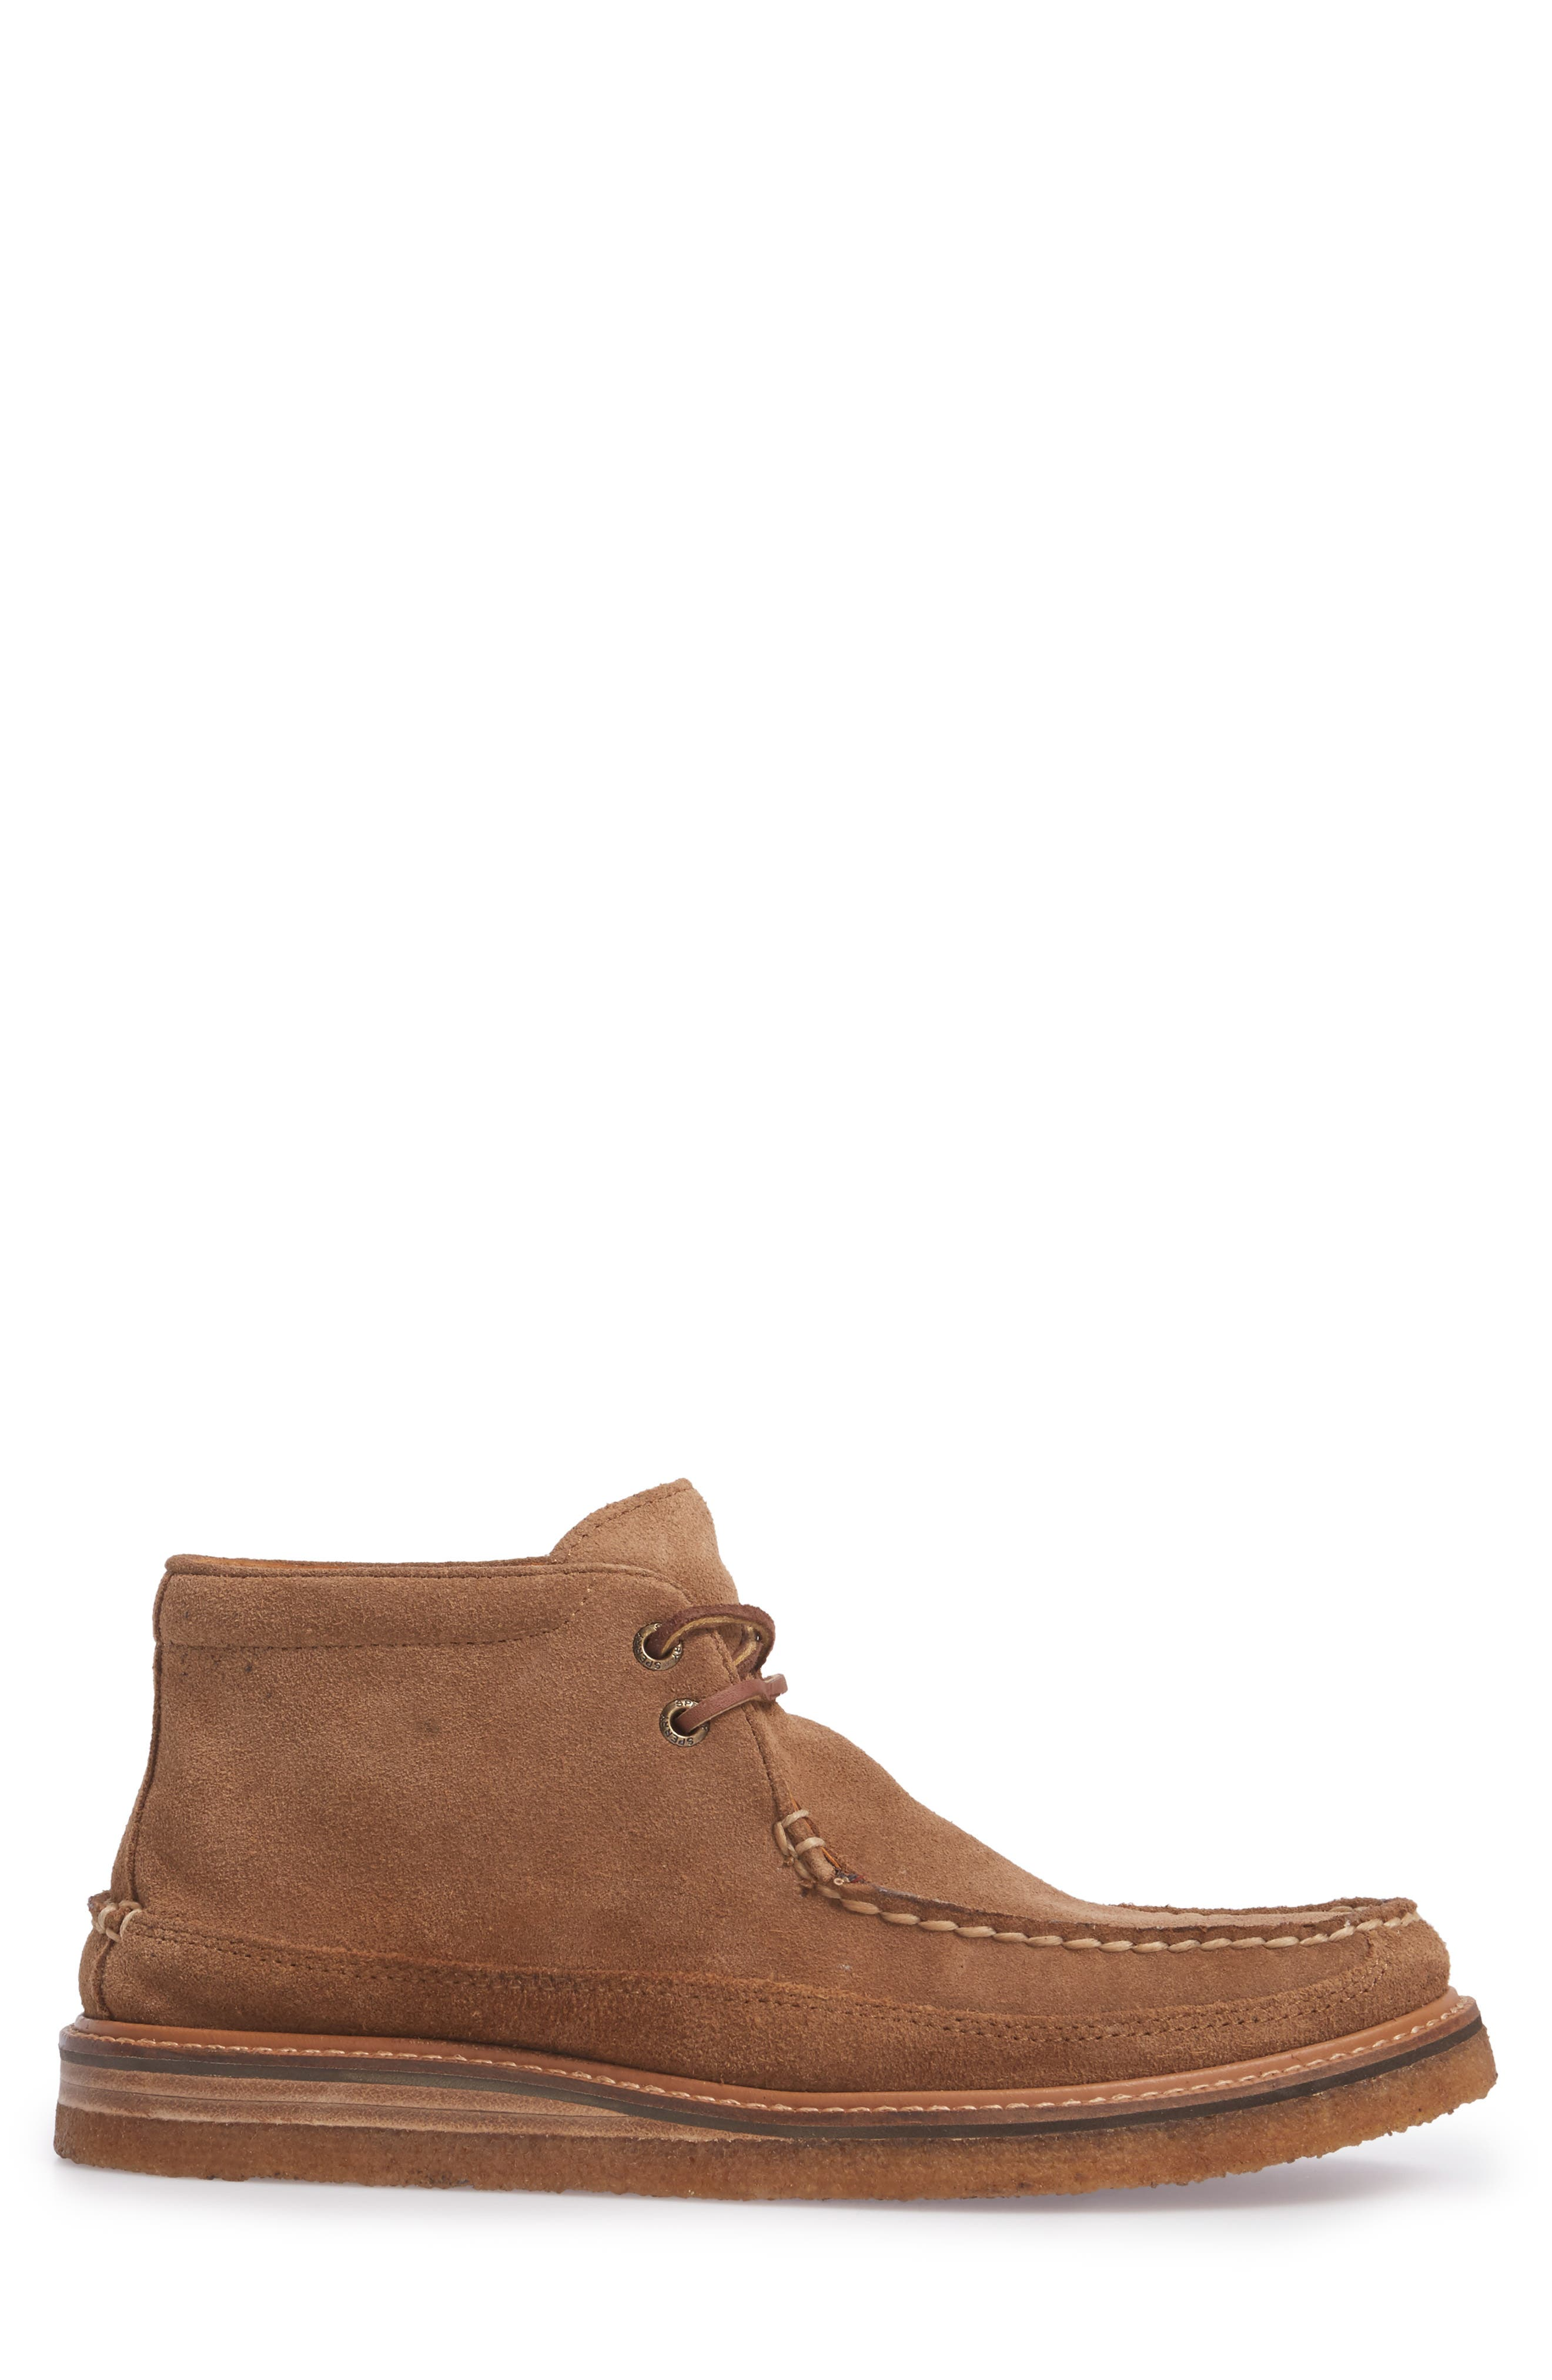 Gold Cup Chukka Boot,                             Alternate thumbnail 3, color,                             Caramel Suede